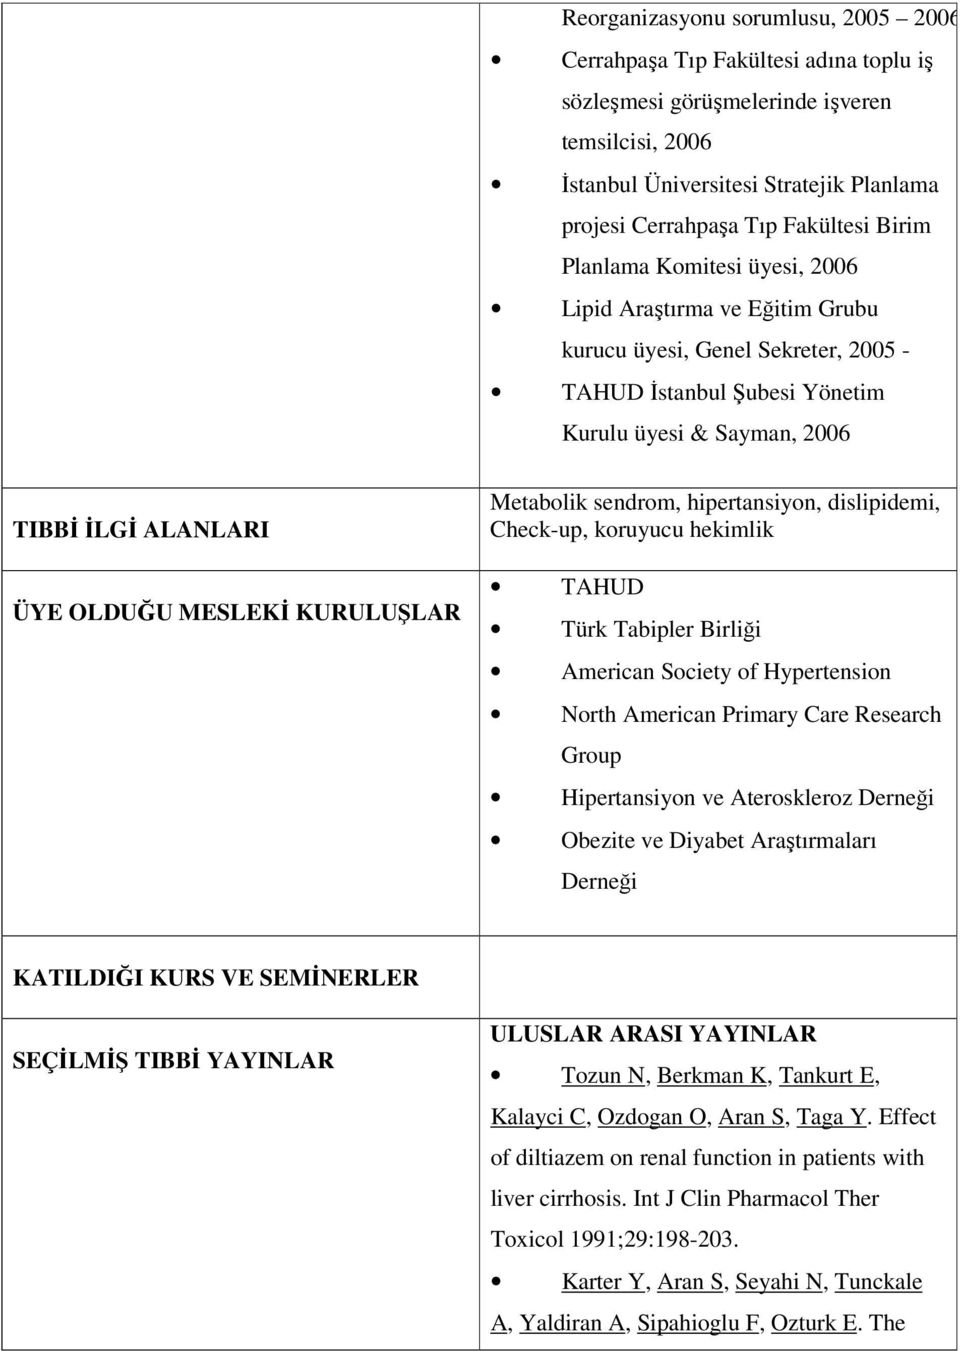 OLDUĞU MESLEKİ KURULUŞLAR Metabolik sendrom, hipertansiyon, dislipidemi, Check-up, koruyucu hekimlik TAHUD Türk Tabipler Birliği American Society of Hypertension North American Primary Care Research